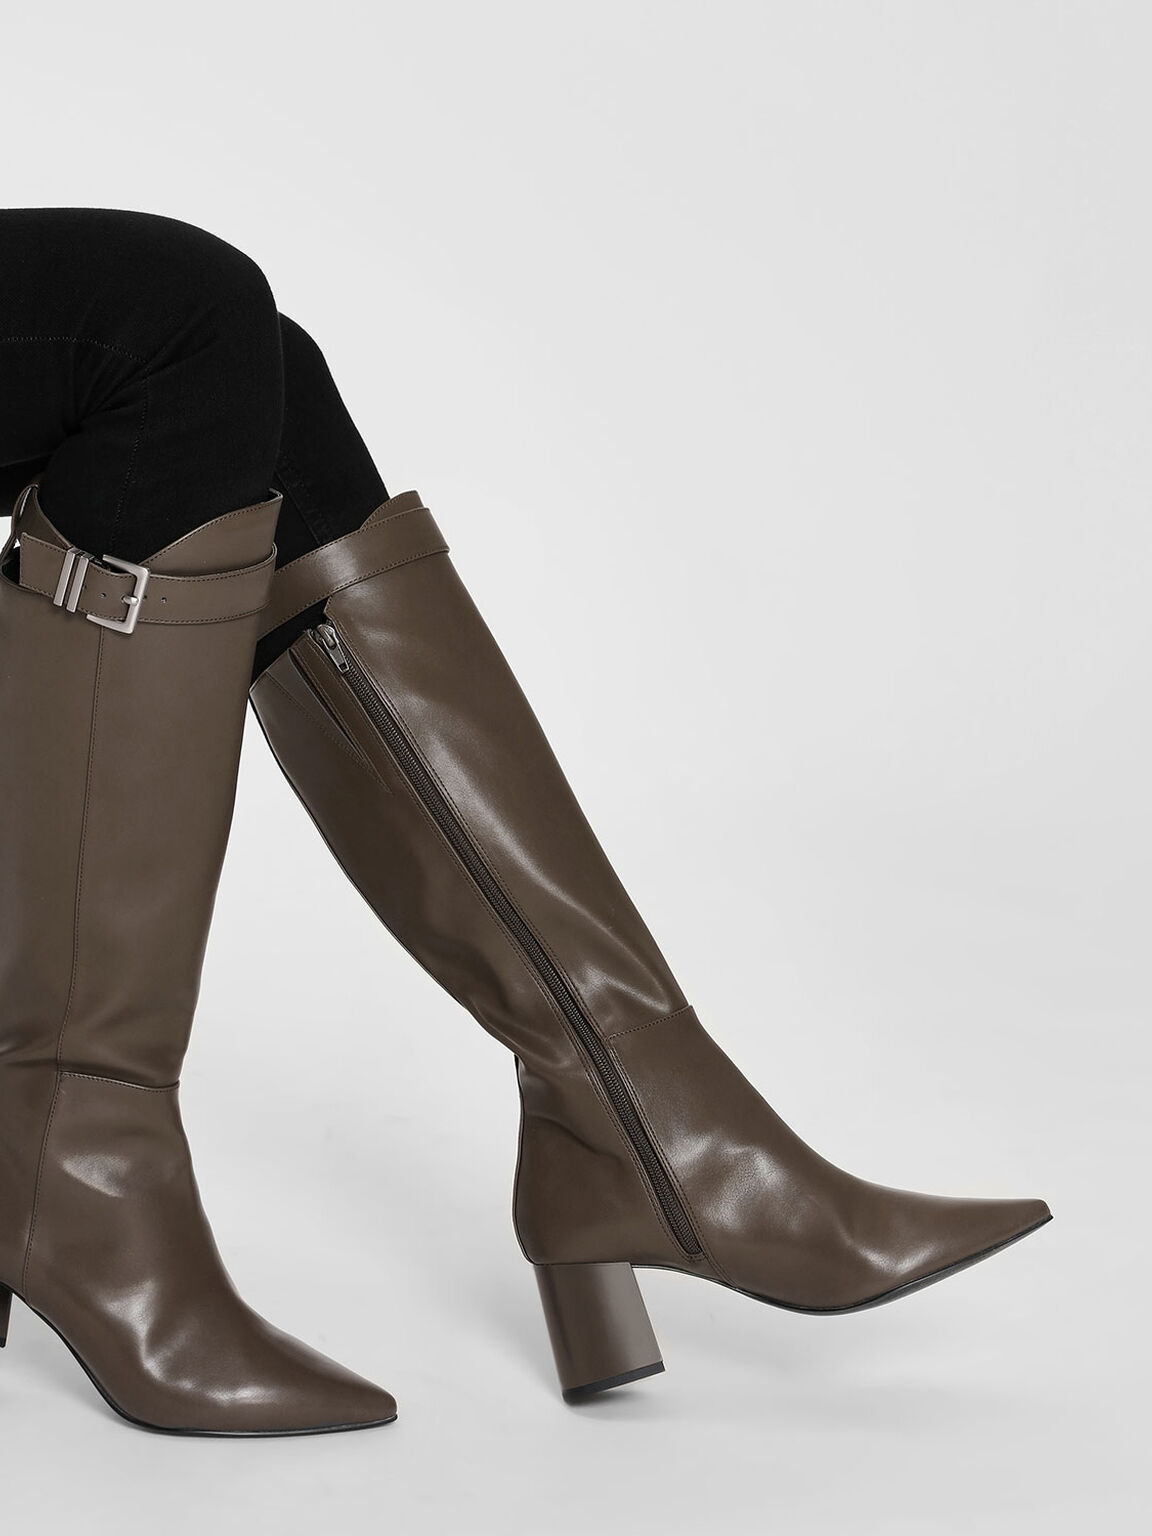 Buckled Strap Detail Knee Boots, Military Green, hi-res